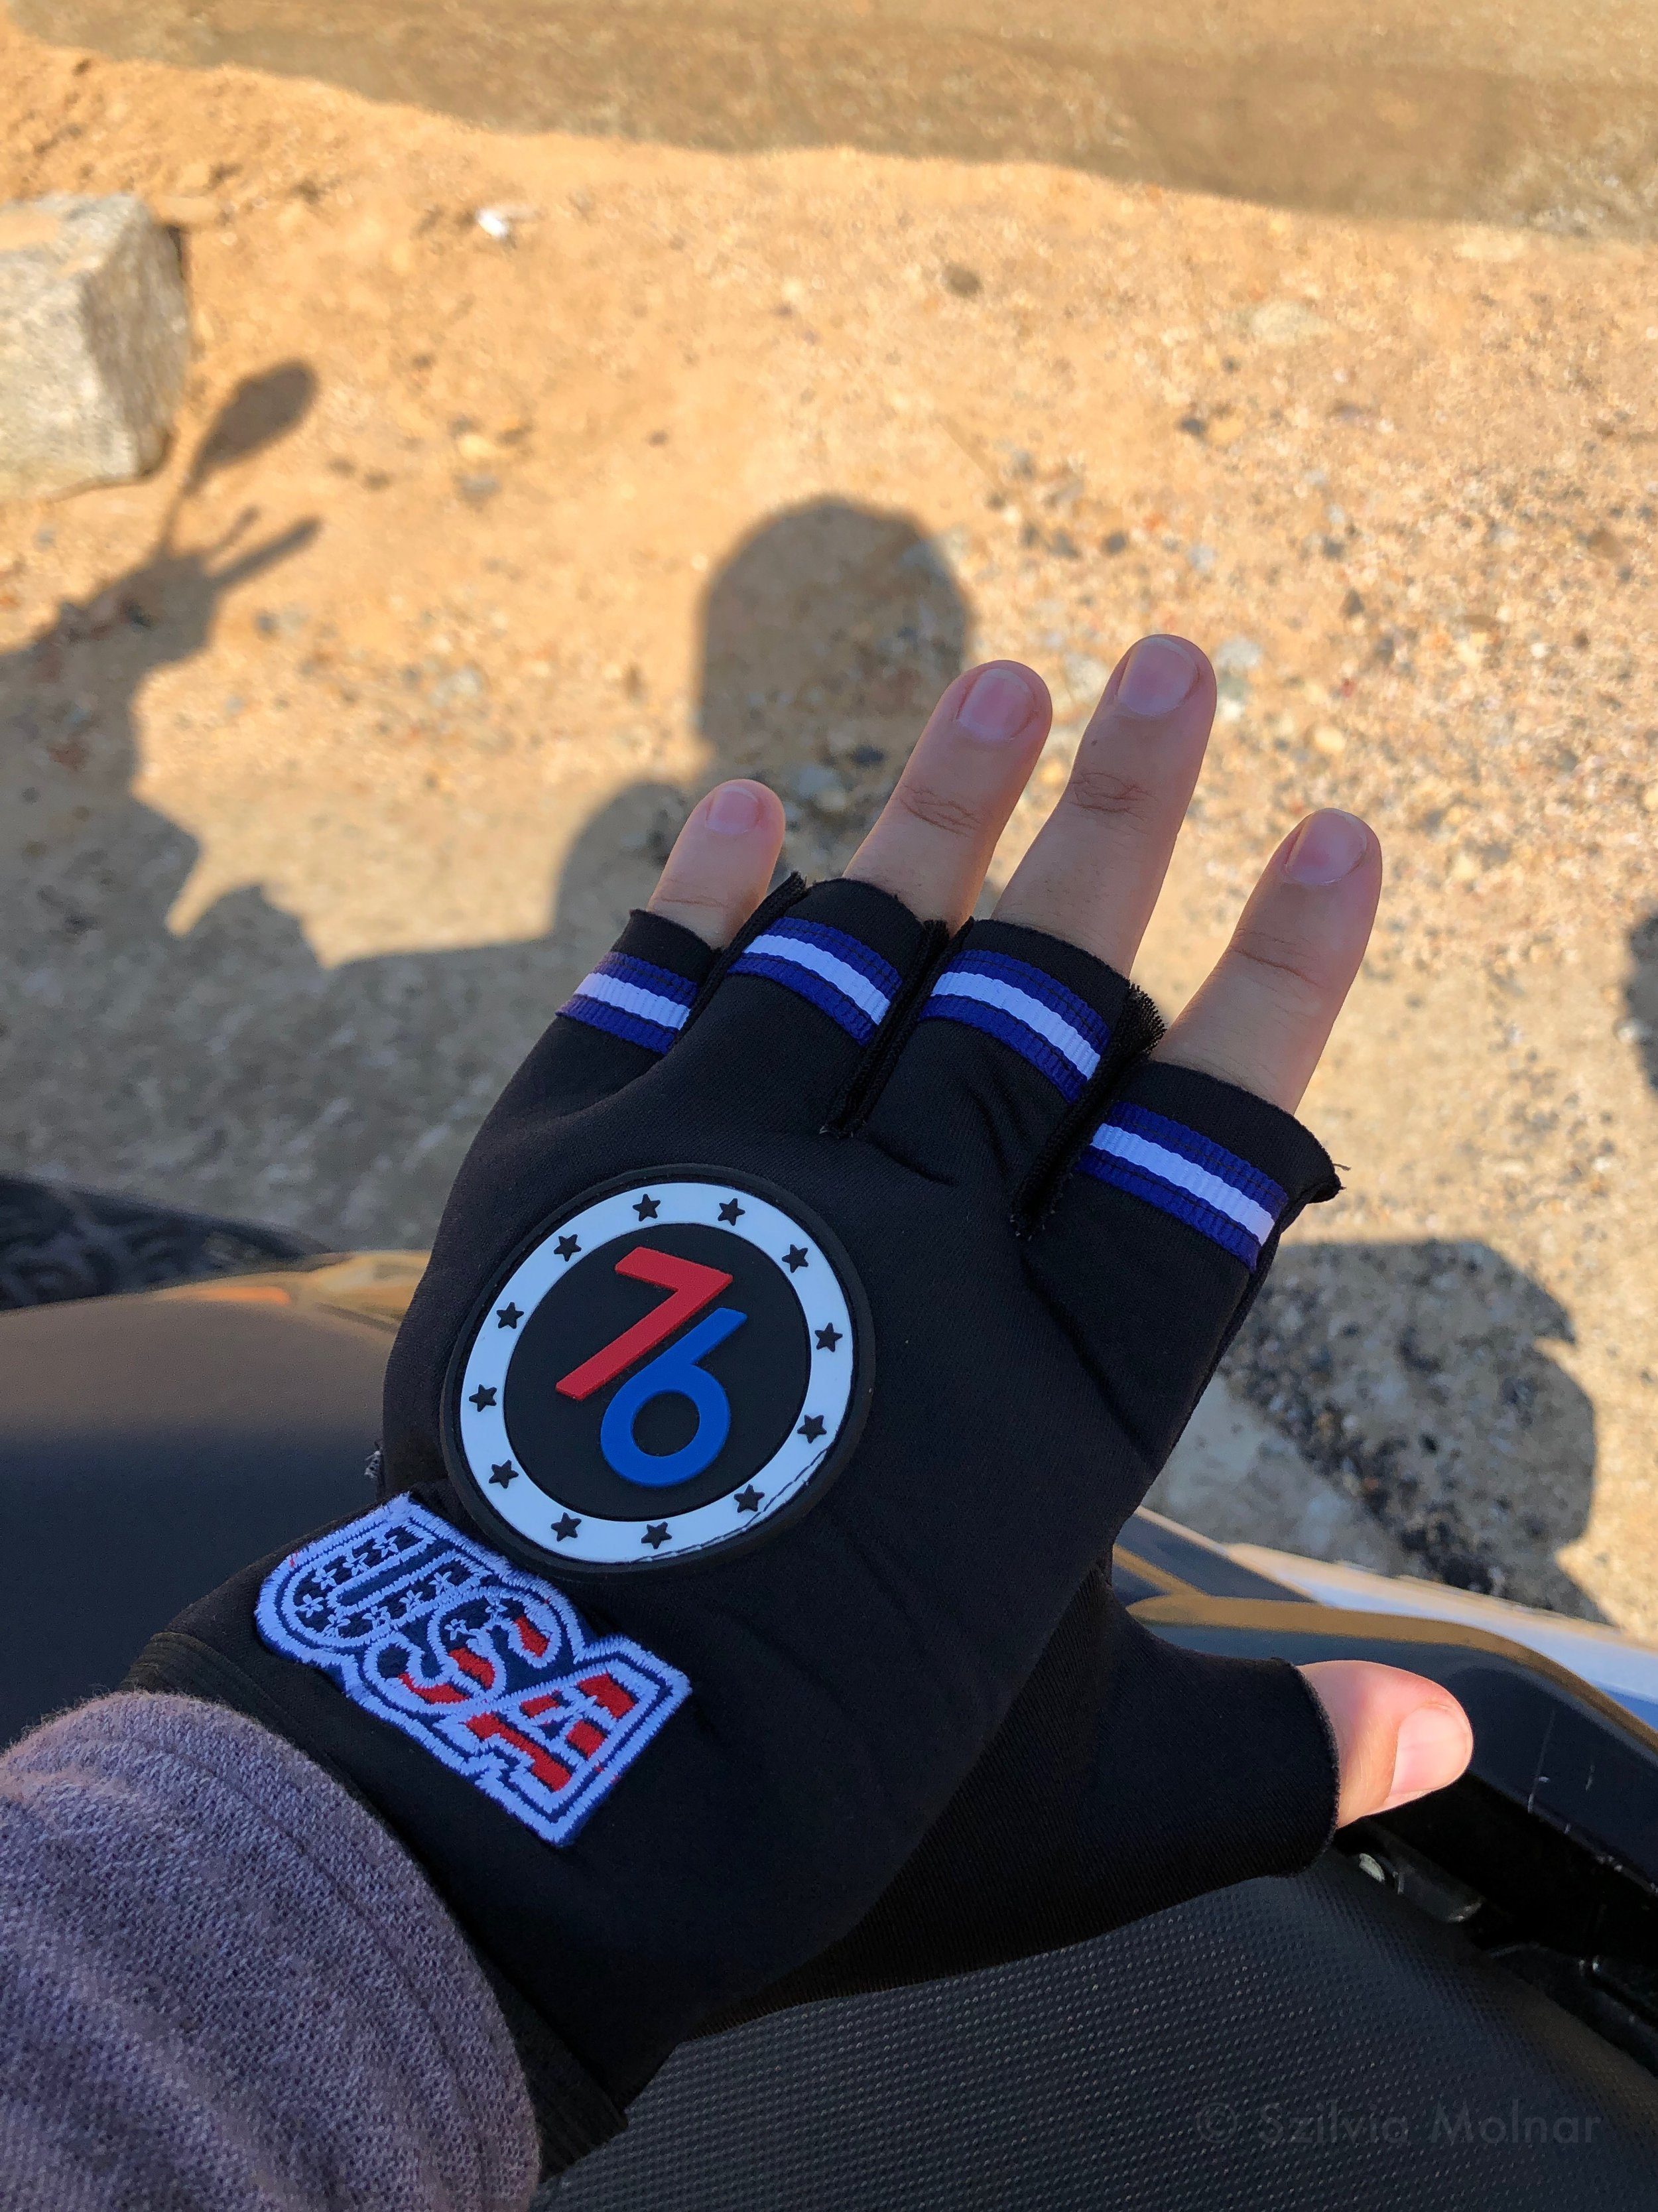 The only gloves I could find…